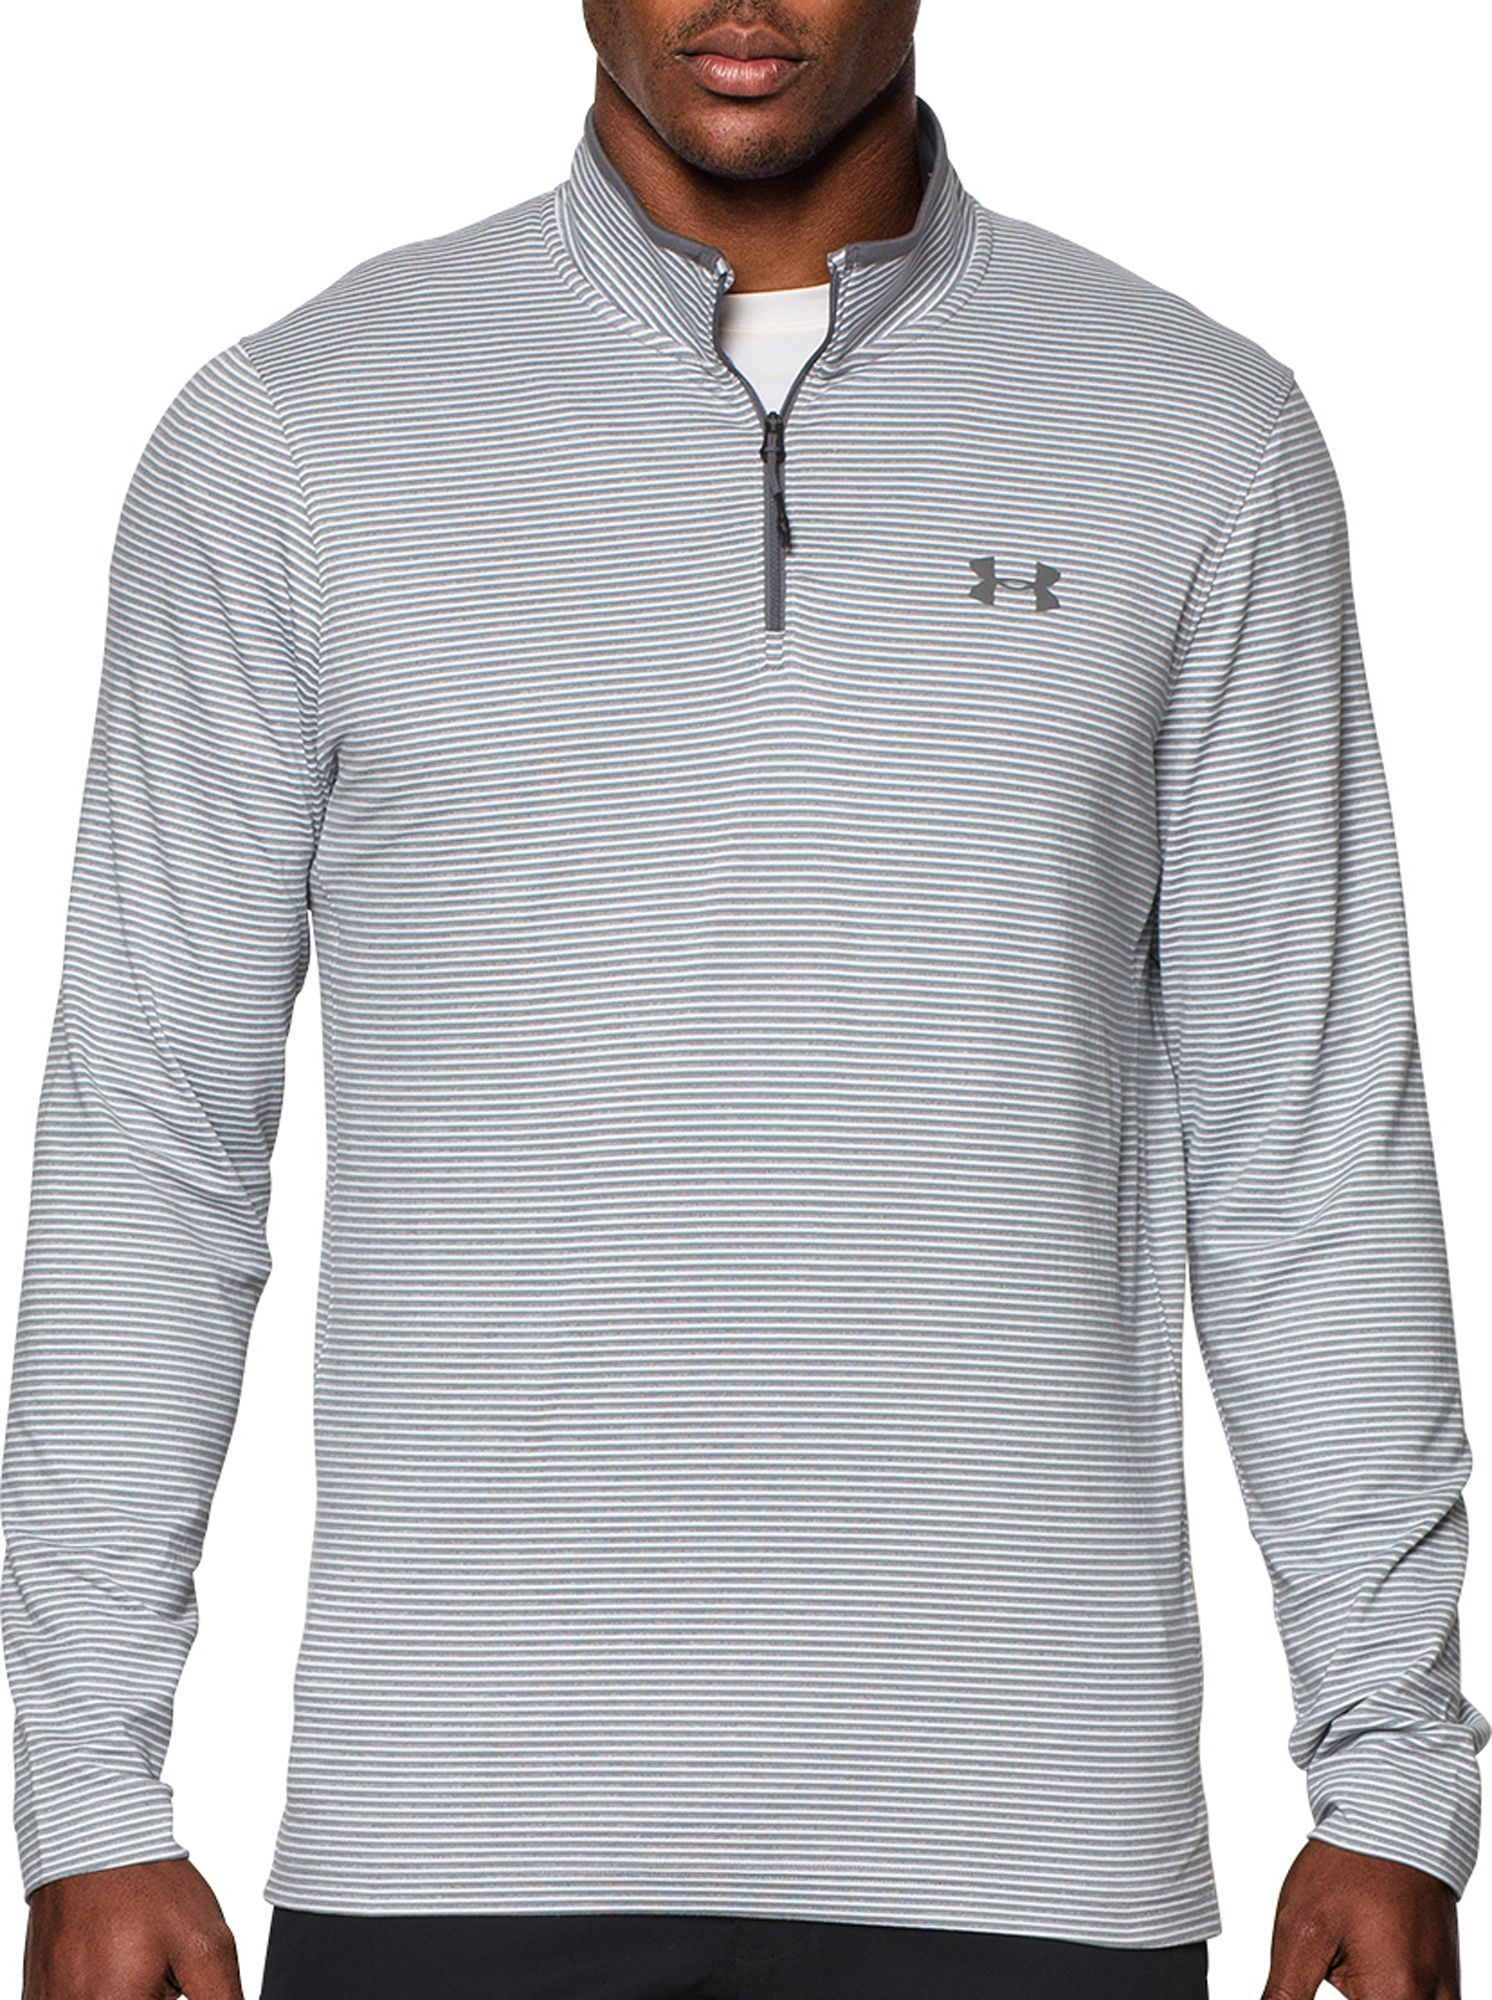 NWT Under Armour Men/'s ColdGear Compression Mock Long Sleeve Shirt Gold Size L